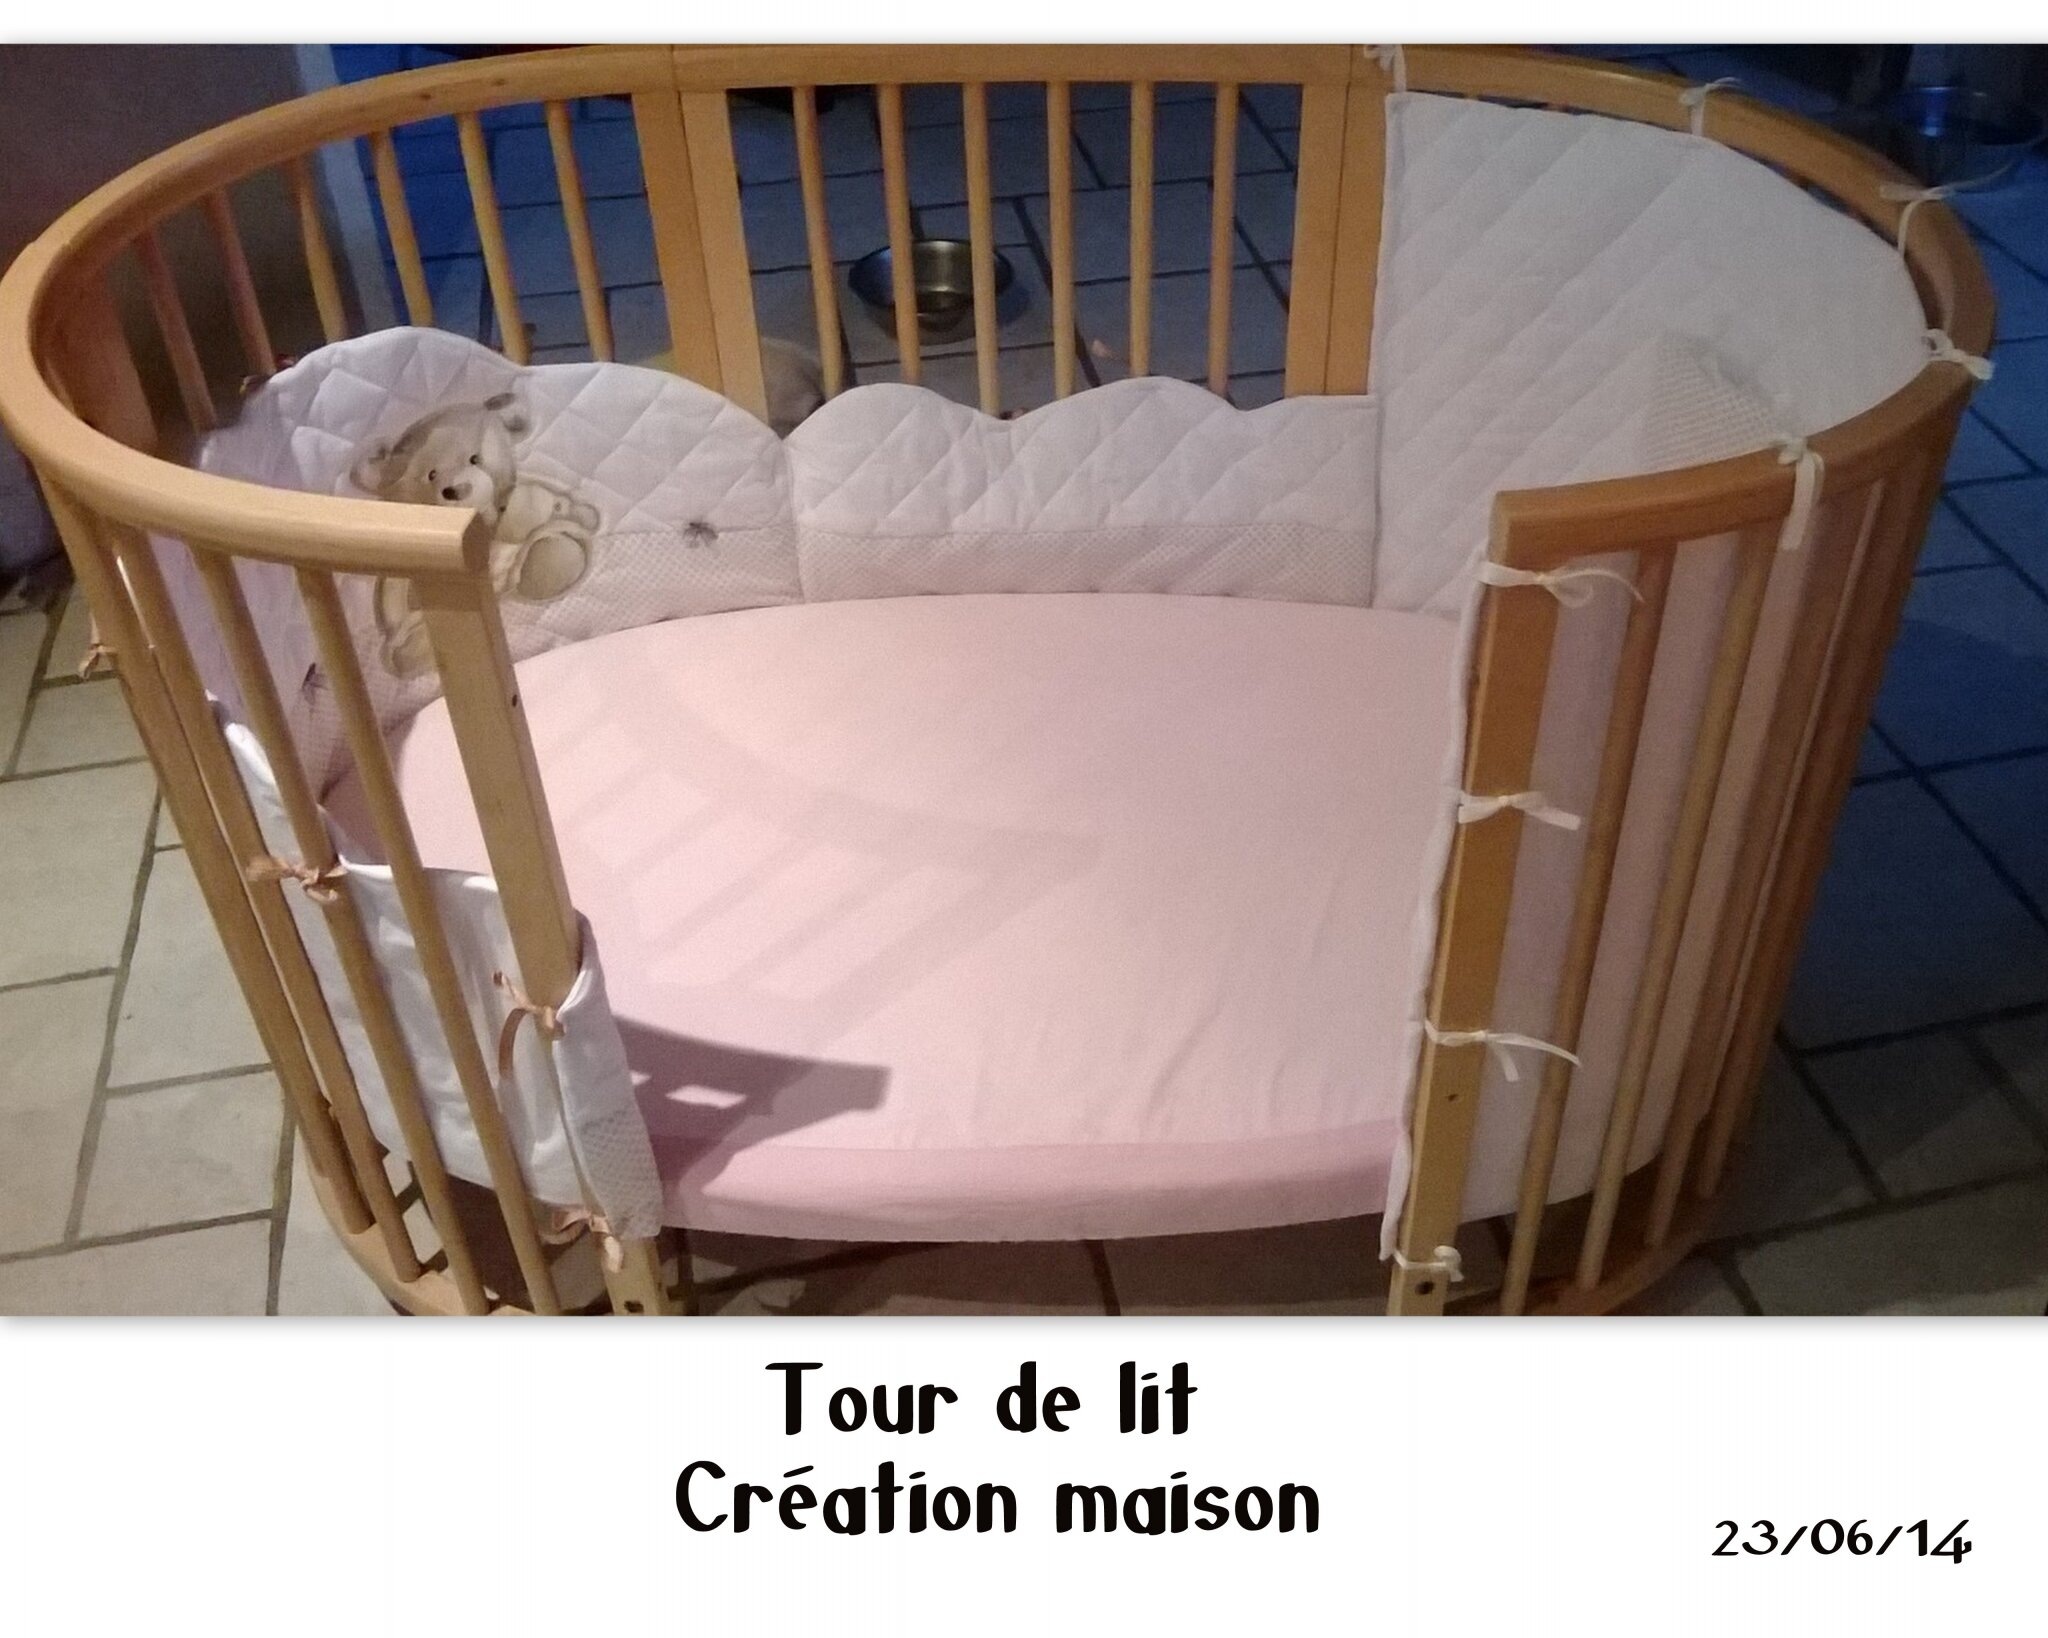 tour de lit stokke cr ation maison chemin de famille 3. Black Bedroom Furniture Sets. Home Design Ideas